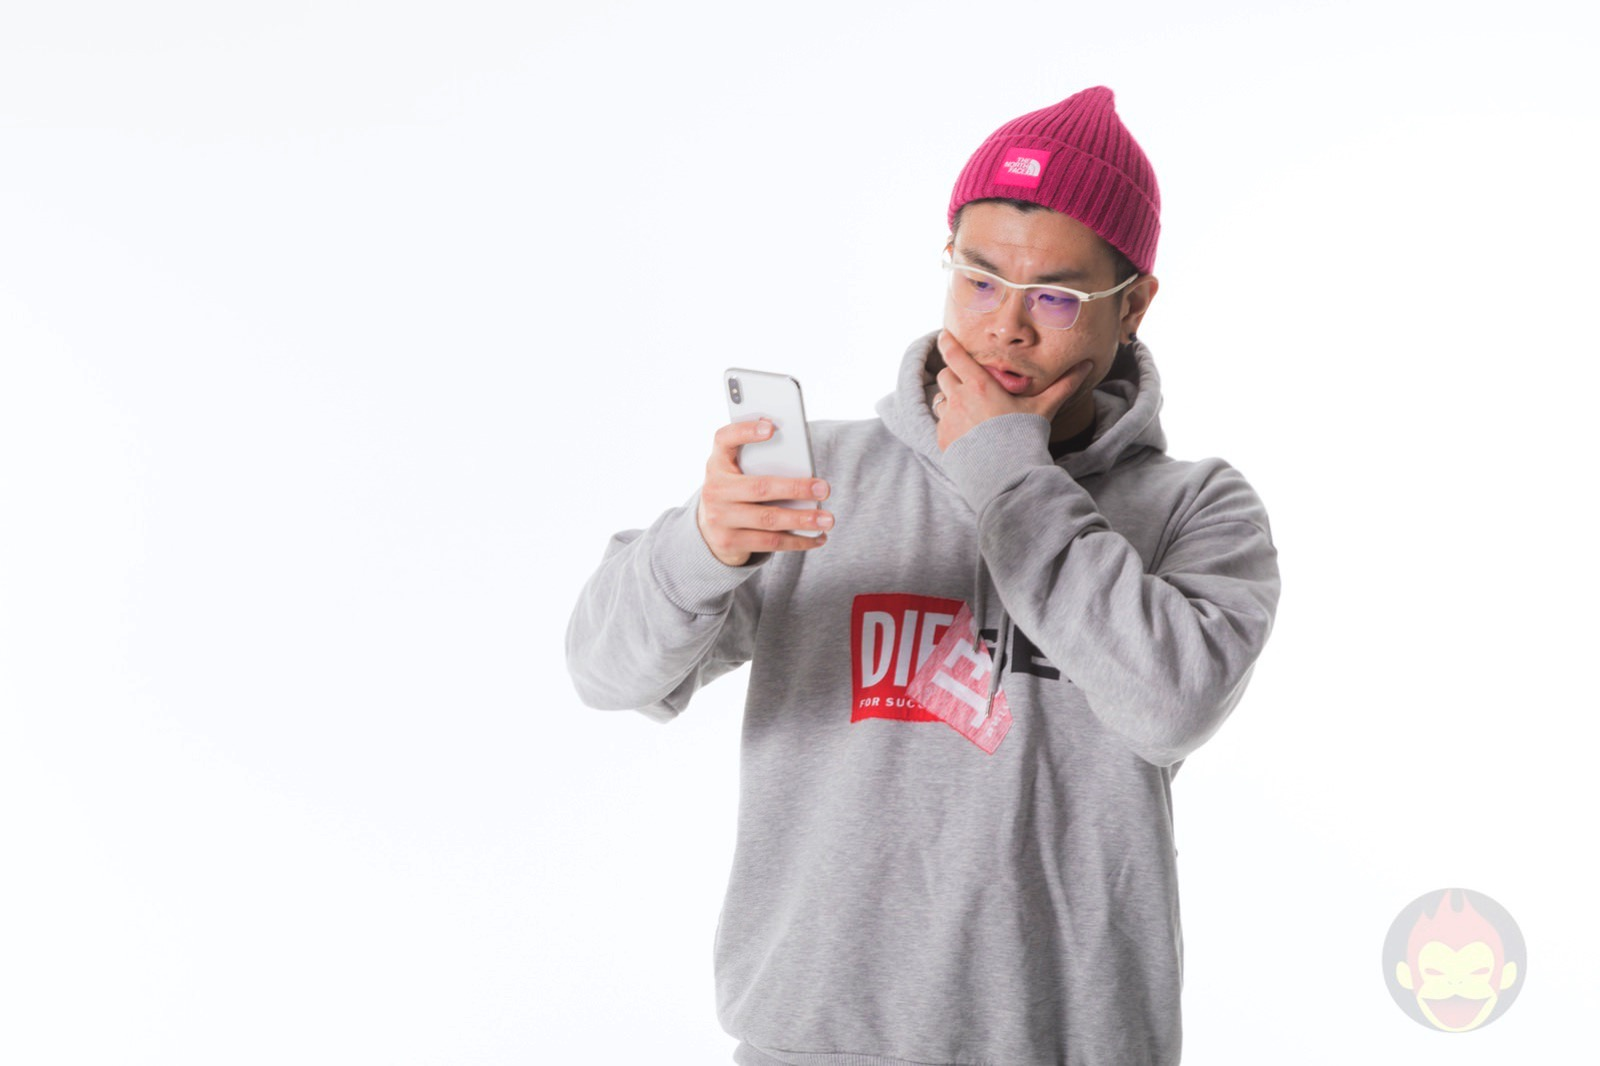 Iphonex gorime hoodie and yellow shirt 01